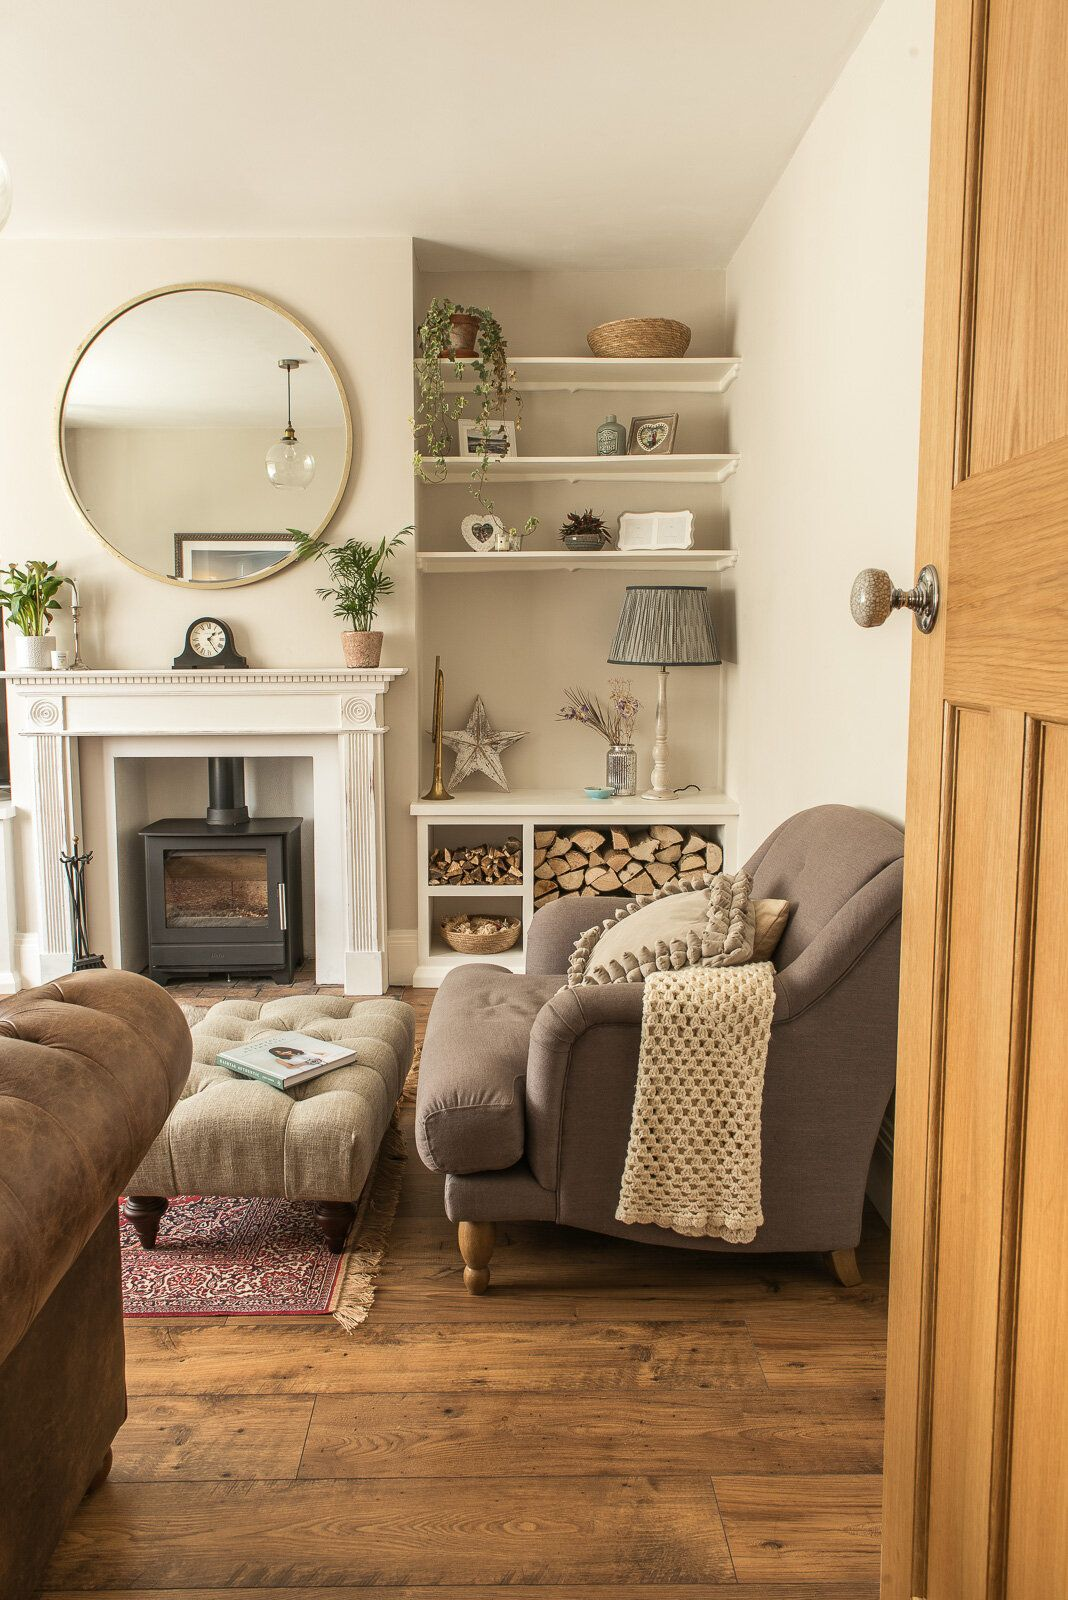 Photo of 8 cosy living room ideas to try in your home | Fifi McGee | Interiors + Renovation Blog